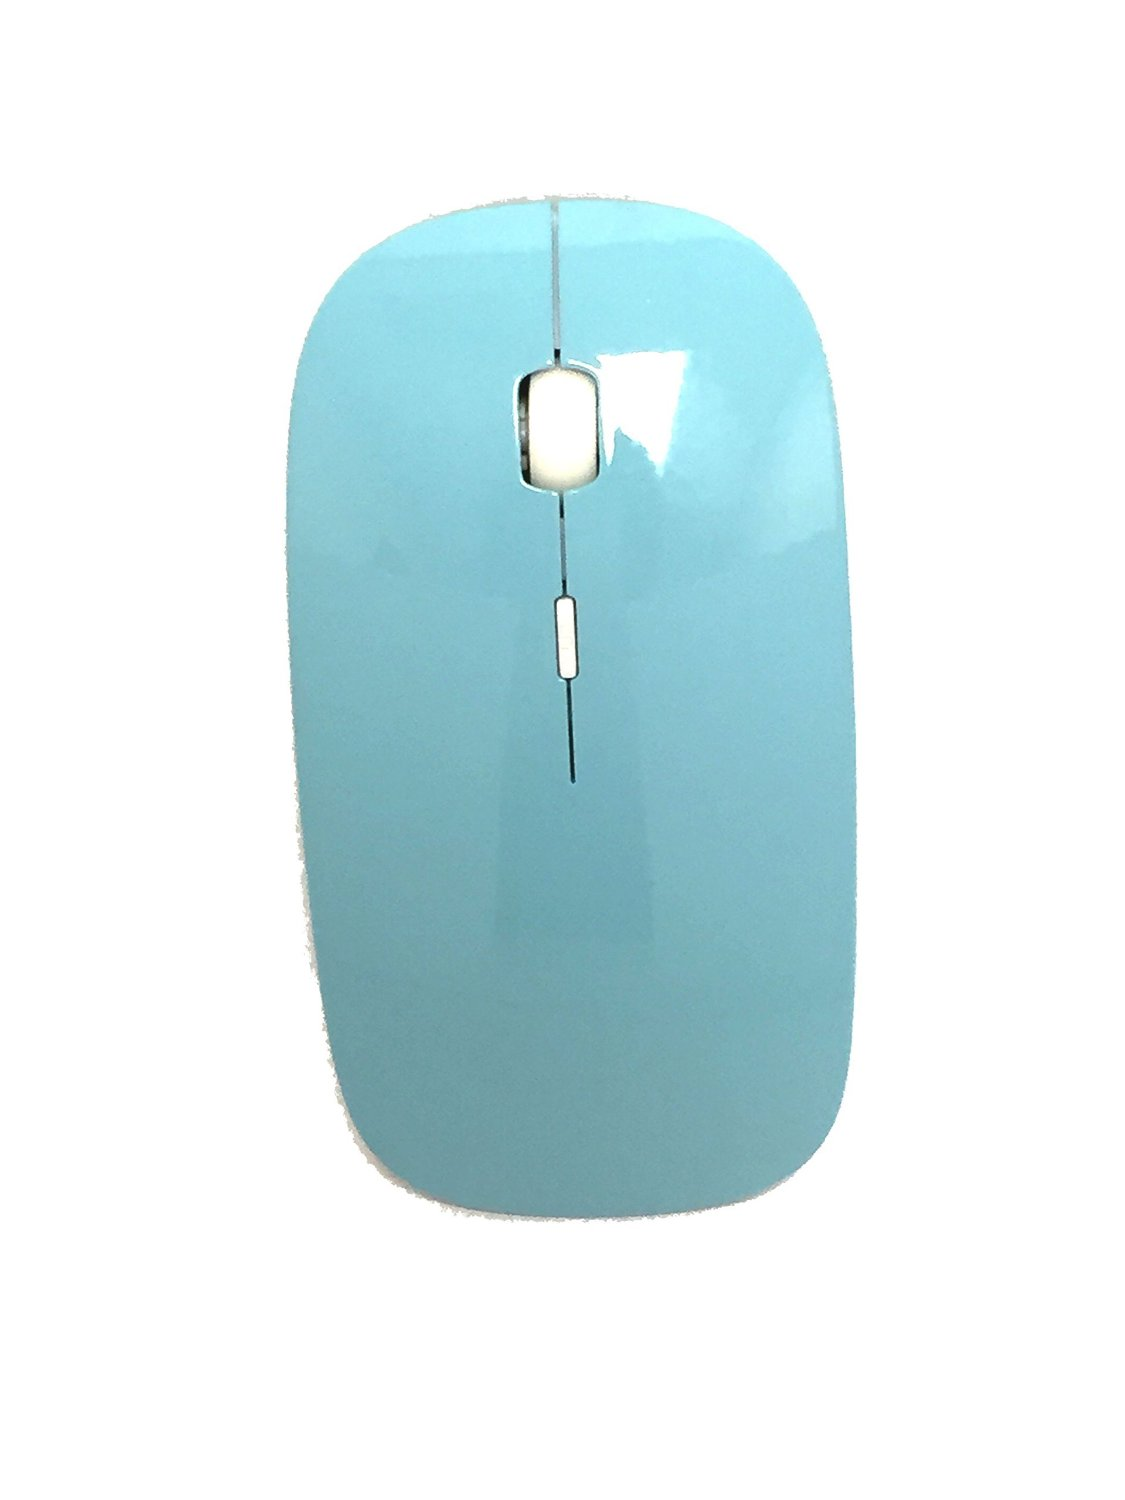 759b579ecc9 Get Quotations · ROCKSOUL MS-102 Bluetooth Laser Mouse for MAC, Baby Blue